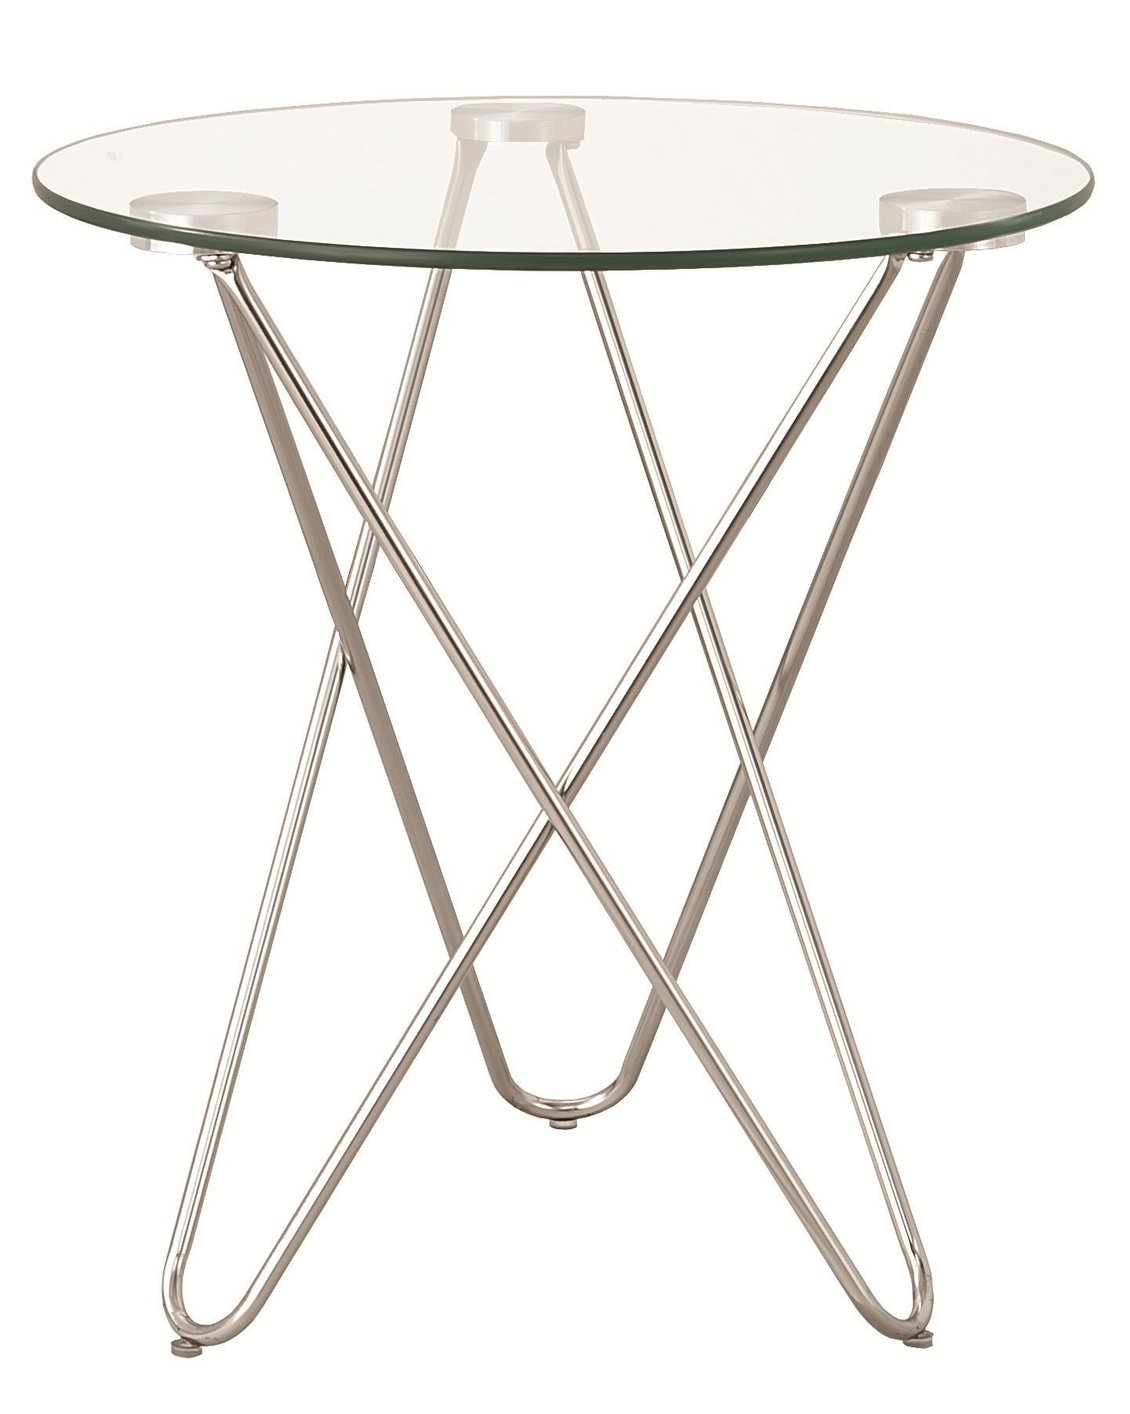 clear metal accent table steal sofa furniture los angeles silver glass outdoor battery powered bedside light antique side styles grey rattan high end modern lamps for living room